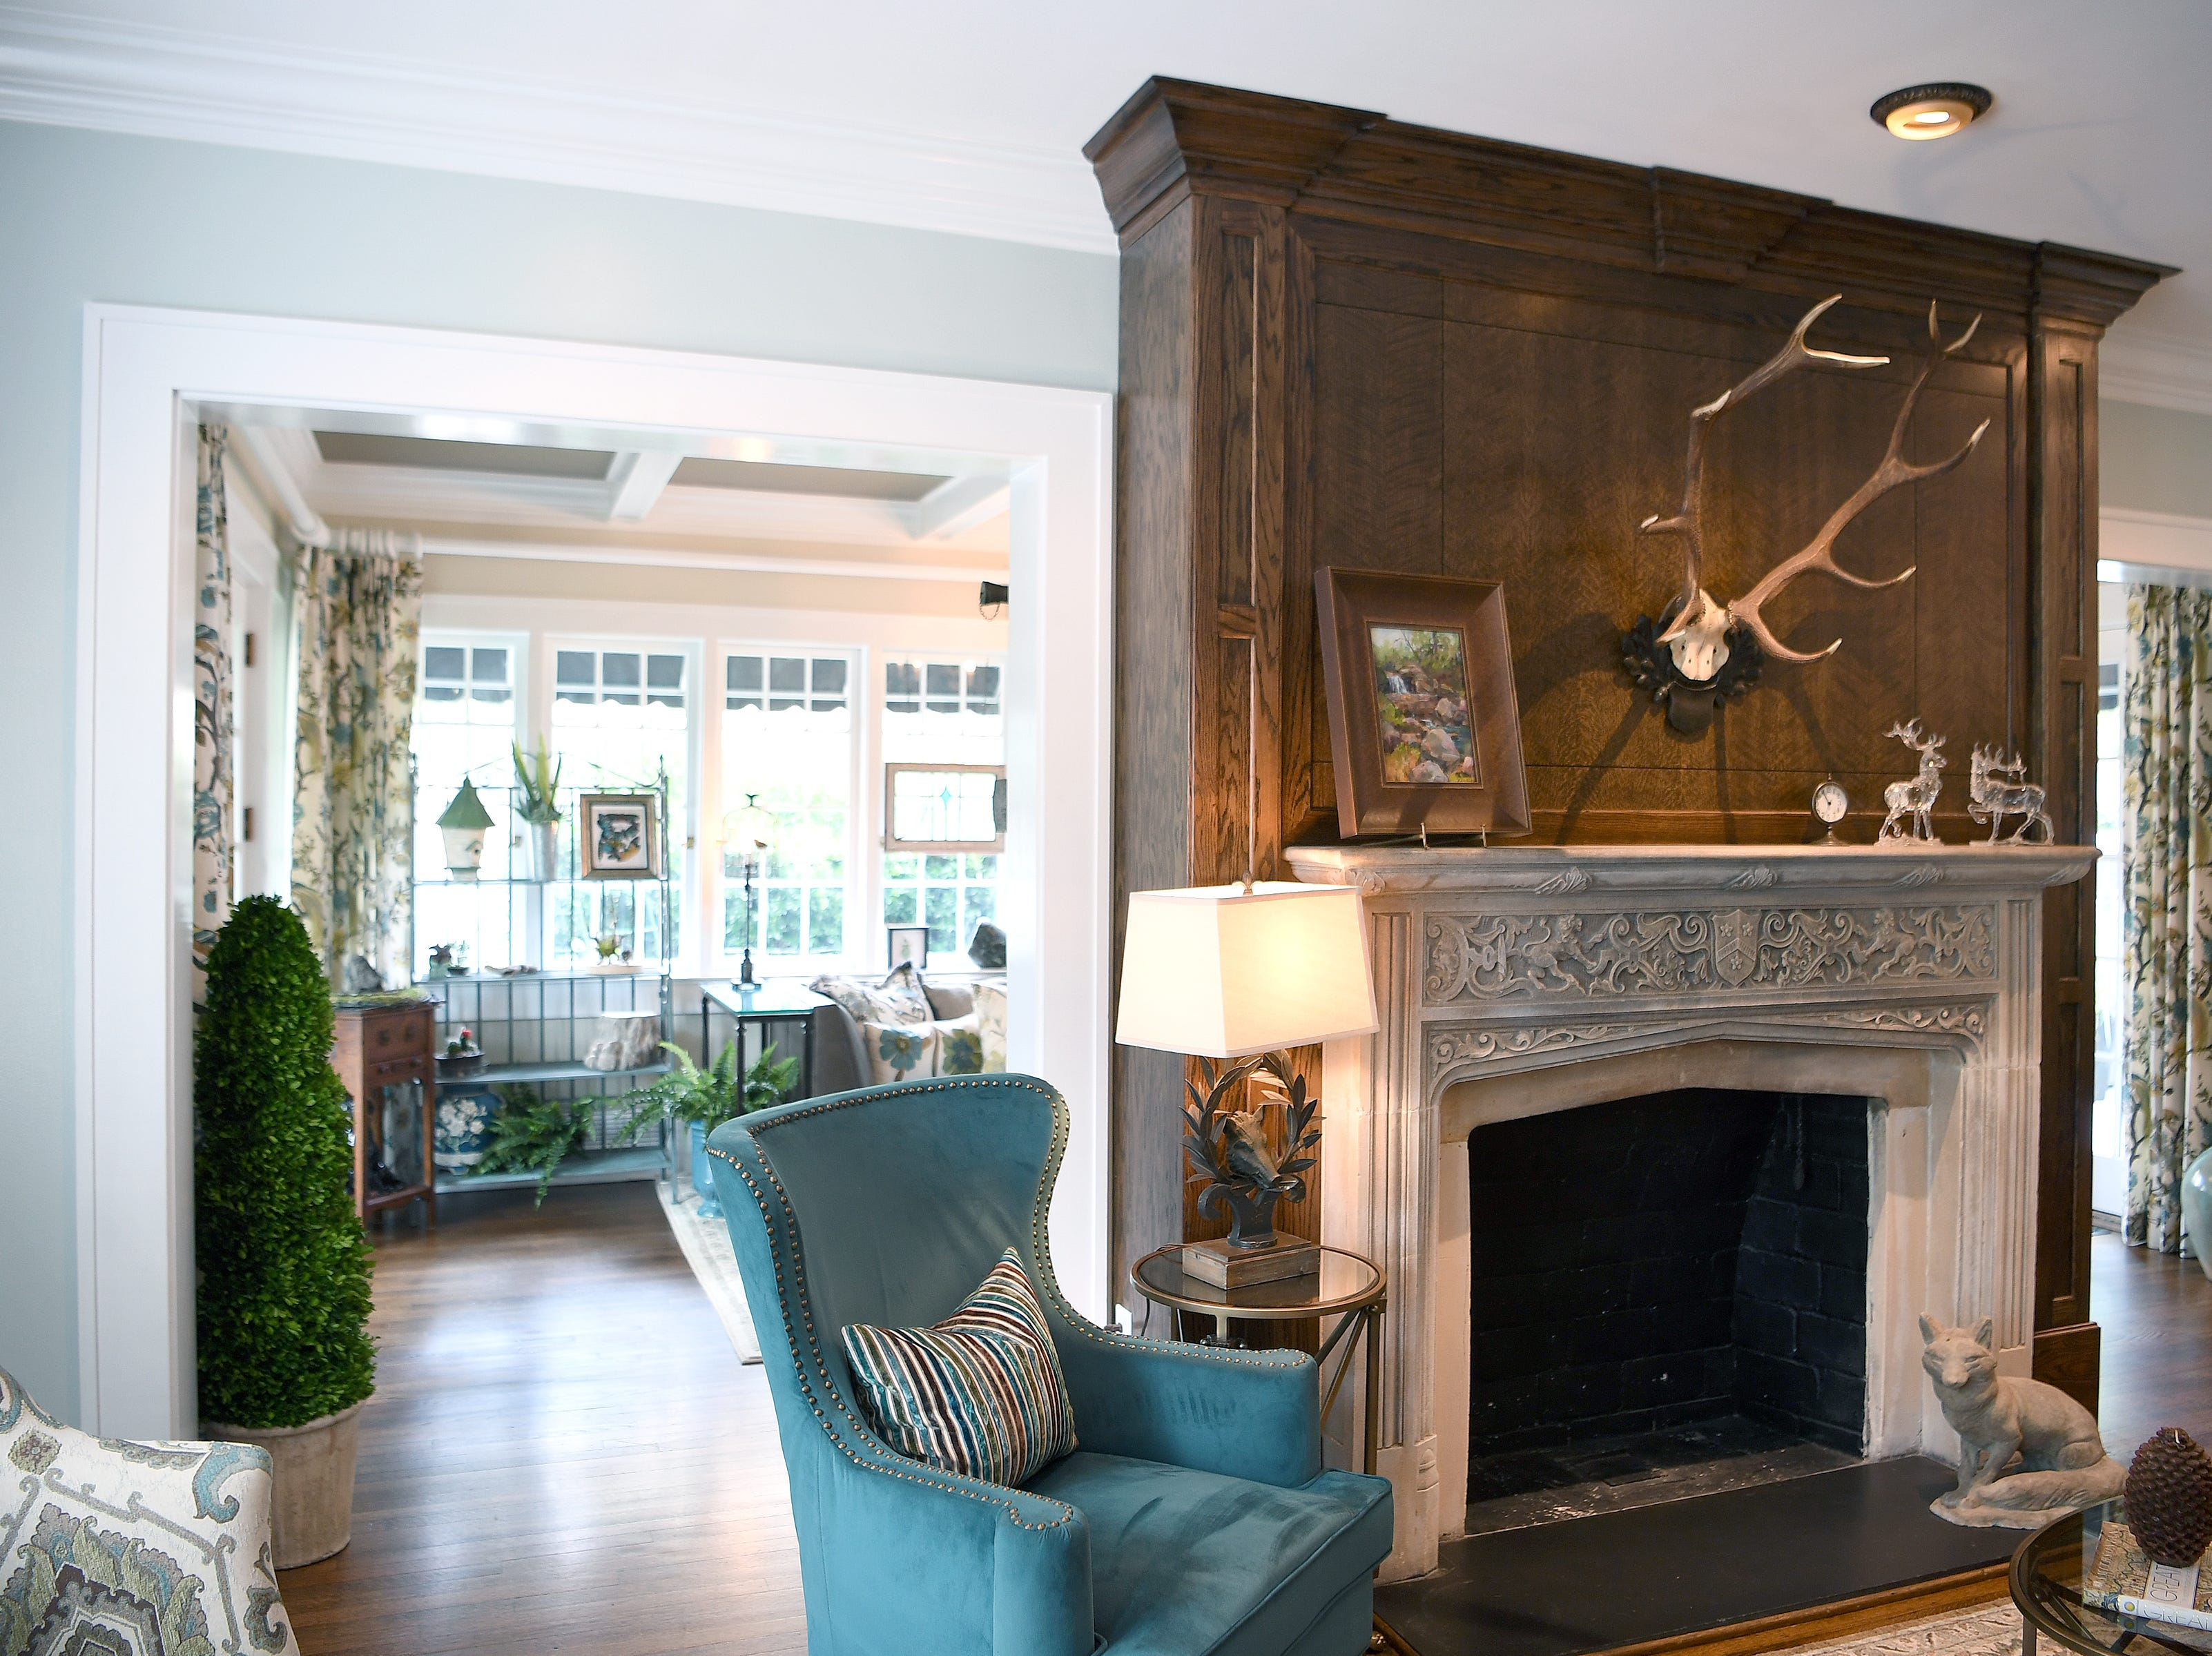 The limestone carved mantle and the restored oak floors are original to the 1925 construction of the Bryant family's North Asheville home.